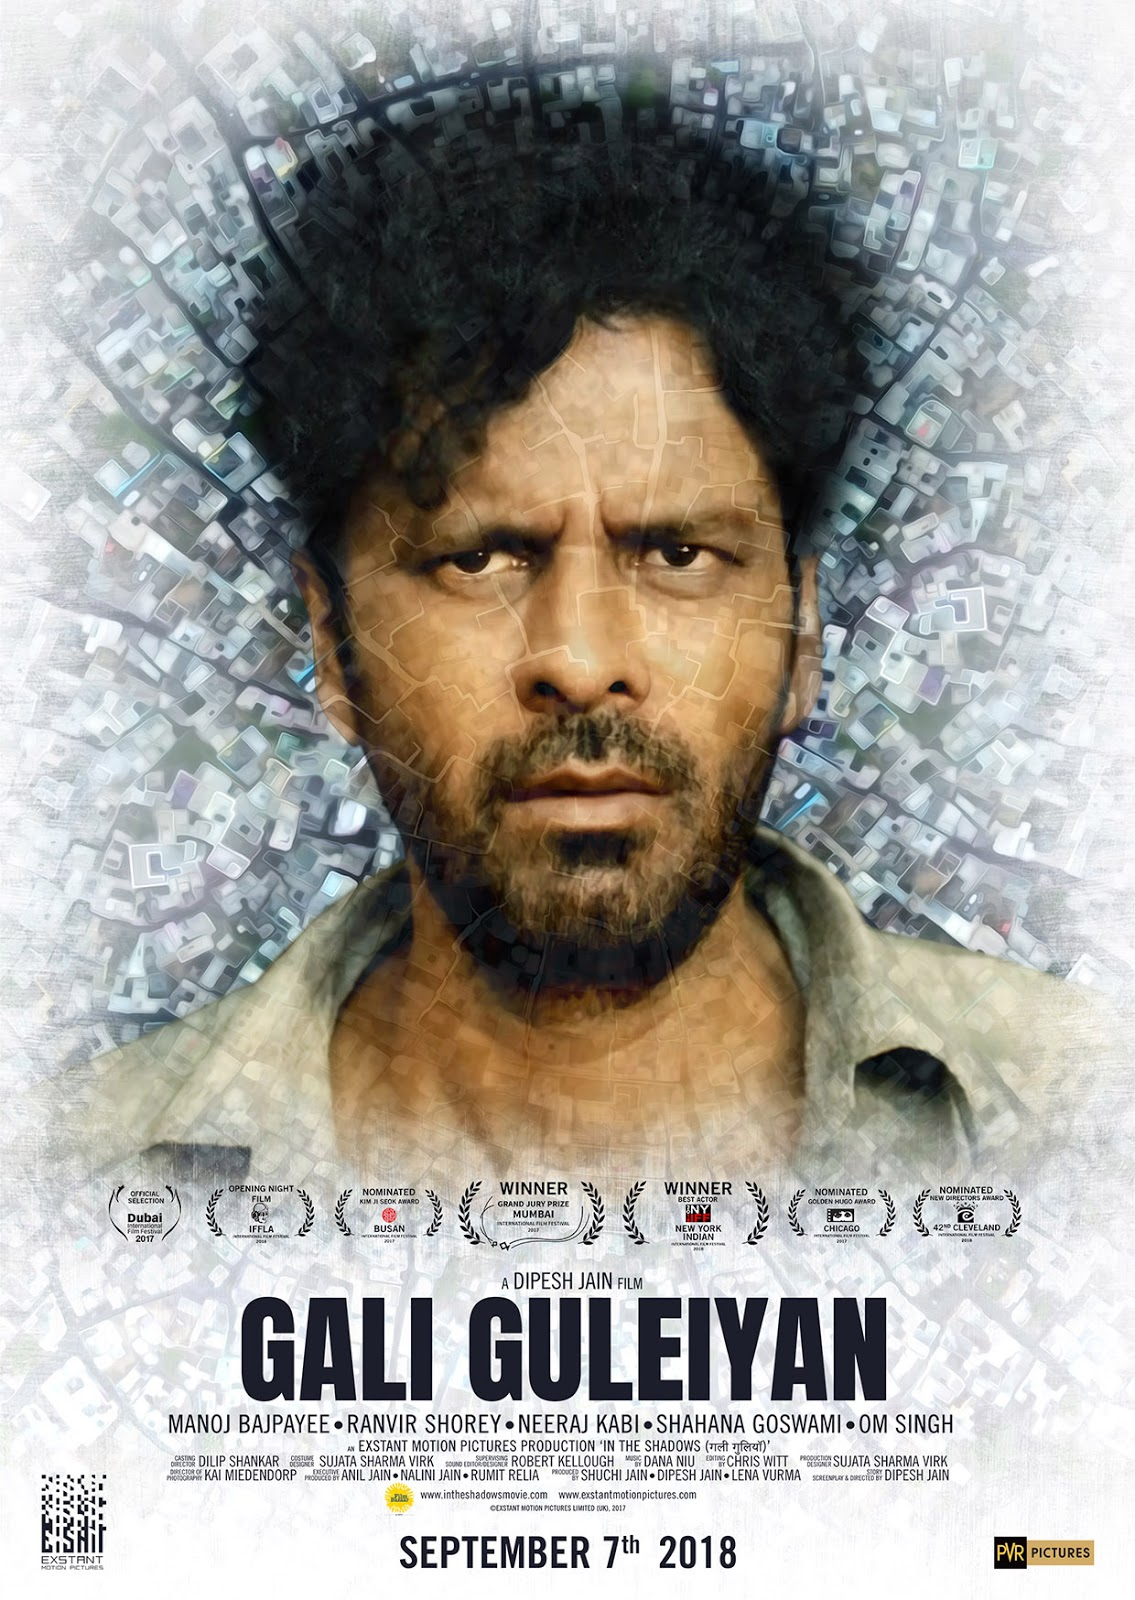 Gali Guleiyan (2018) Hindi Movie HDTVRip | 720p | 480p